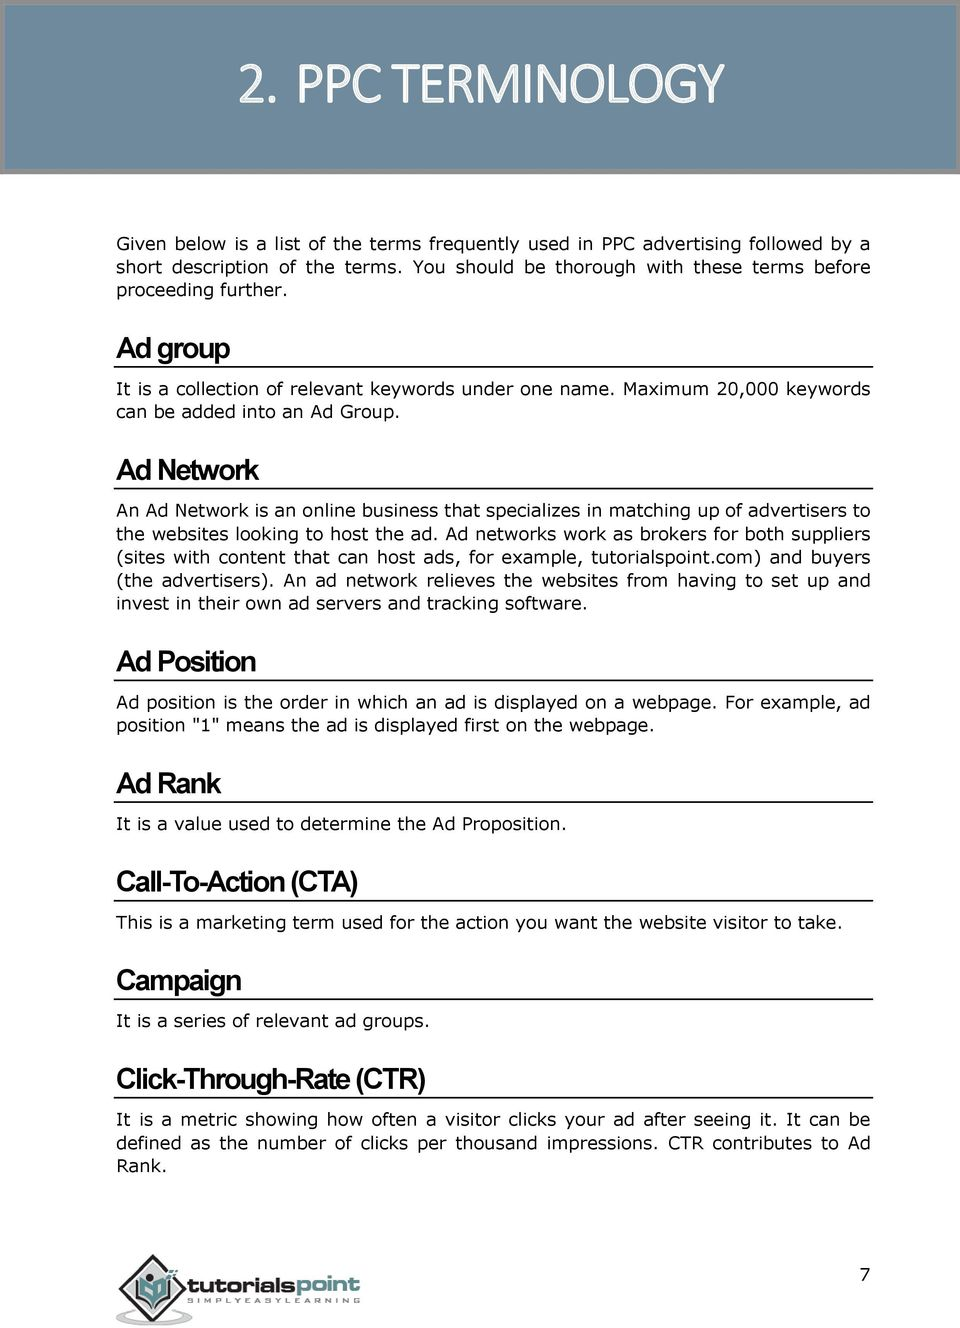 Ad Network An Ad Network is an online business that specializes in matching up of advertisers to the websites looking to host the ad.